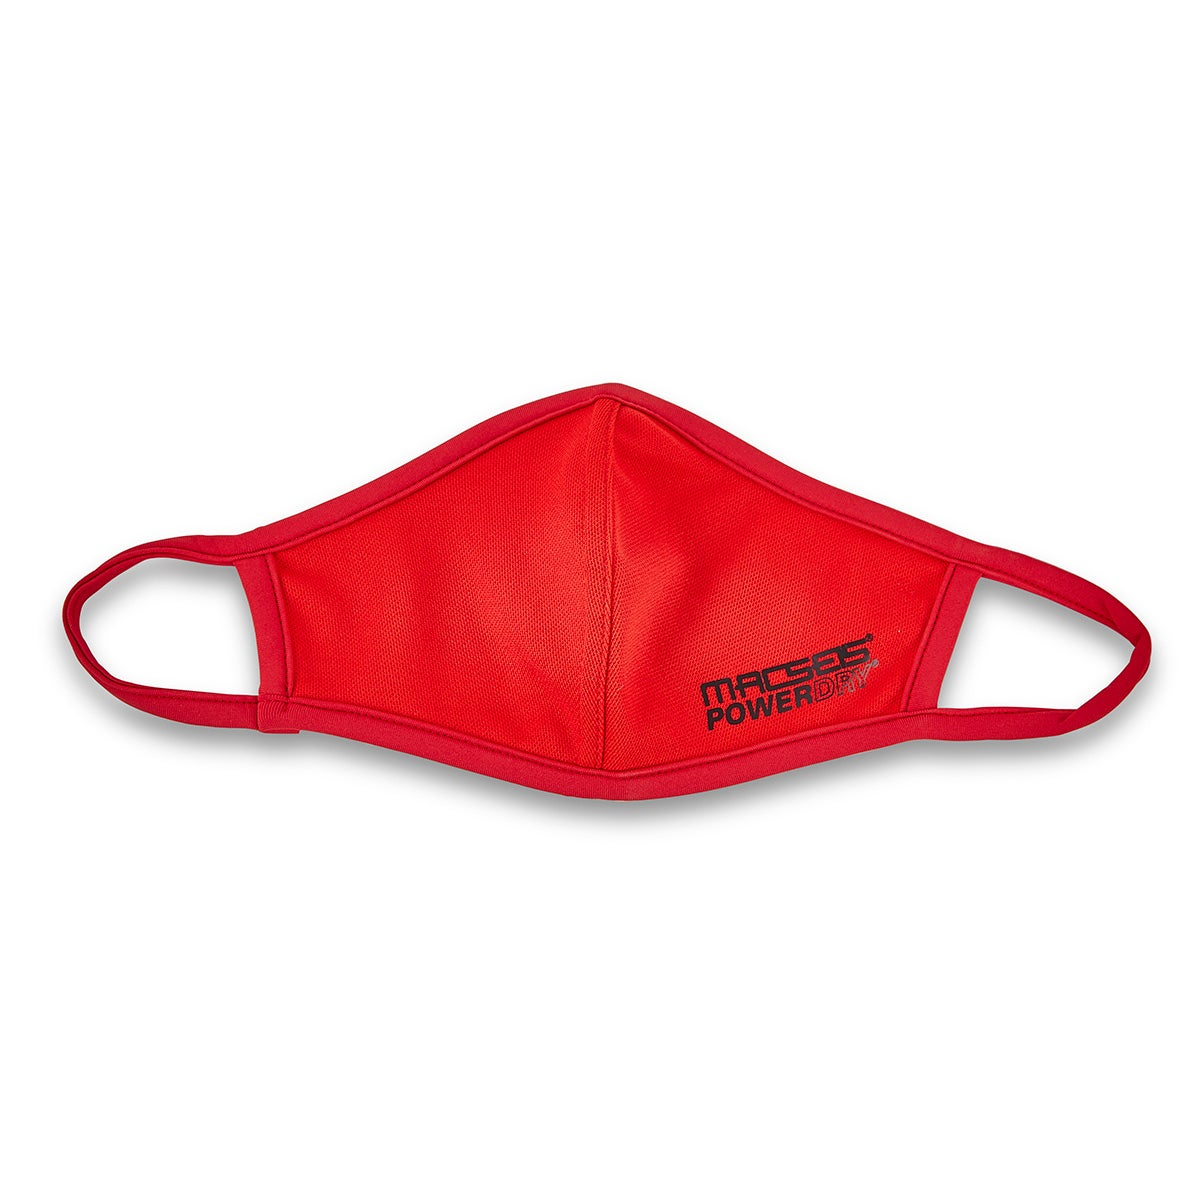 Unisex MACSEIS POWERDRY red face masks - SMALL